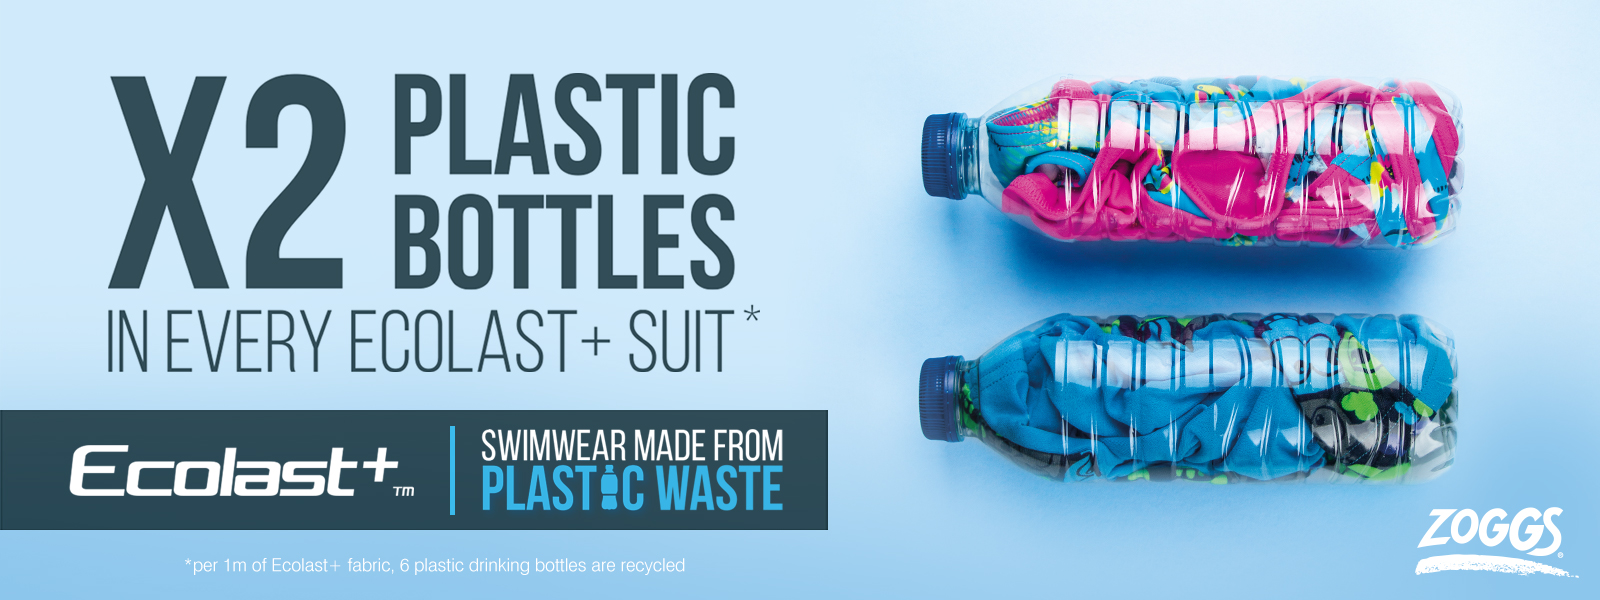 2X Plastic Bottles in every Ecolast+ Suit